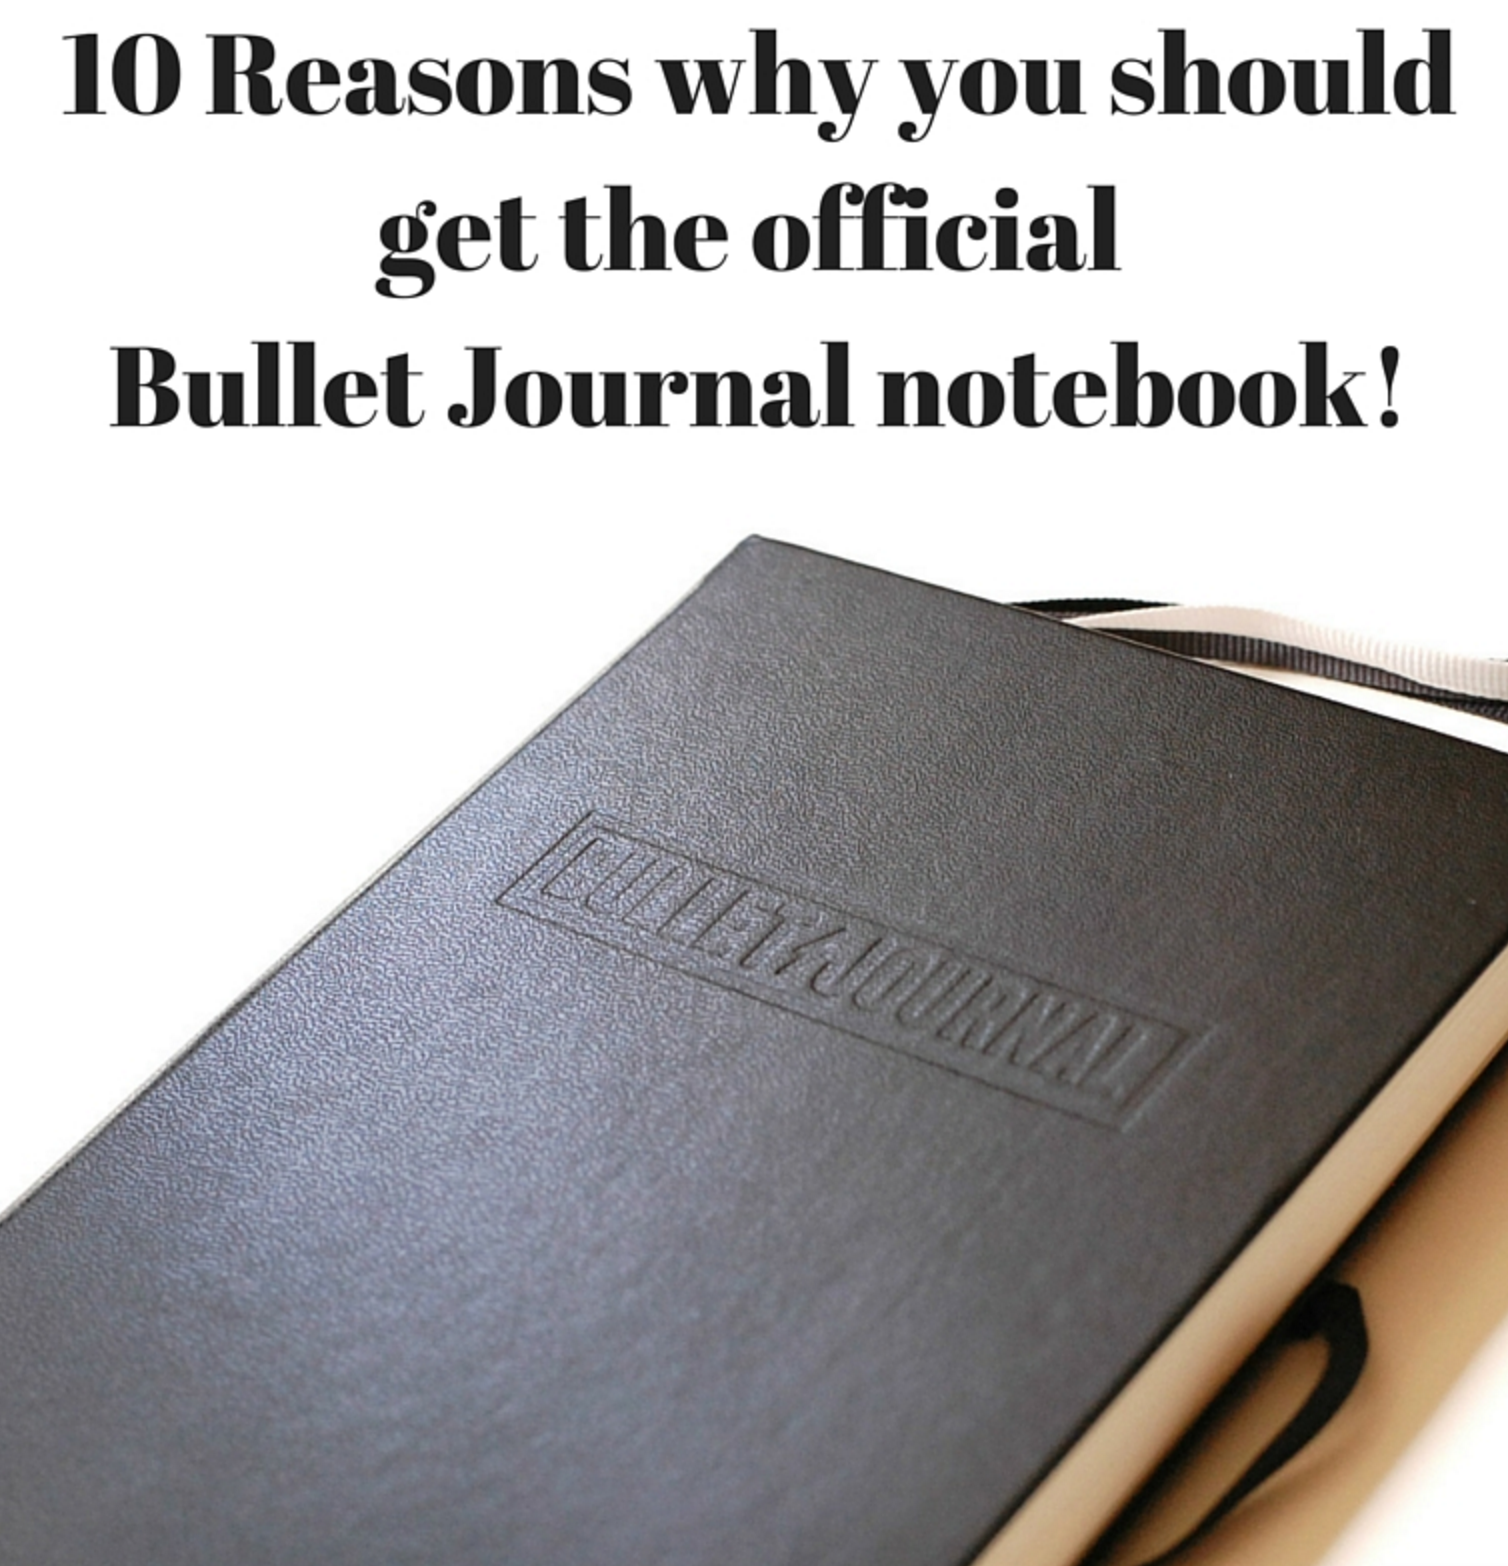 1 0 reasons why you should get the official bullet journal notebook